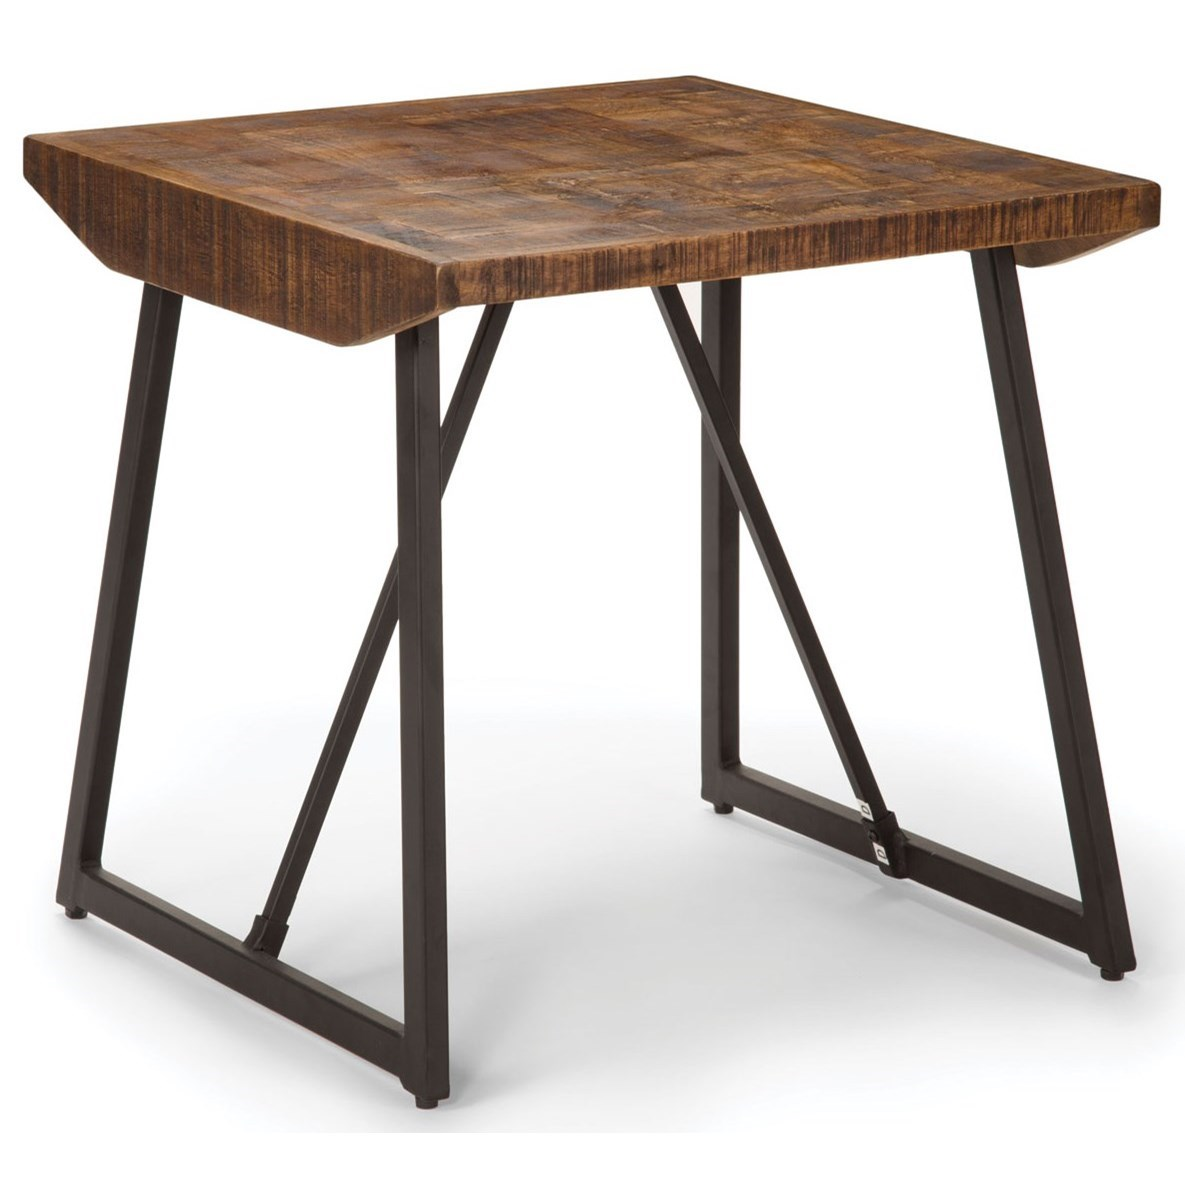 Walden Parquet End Table by Steve Silver at Miller Home